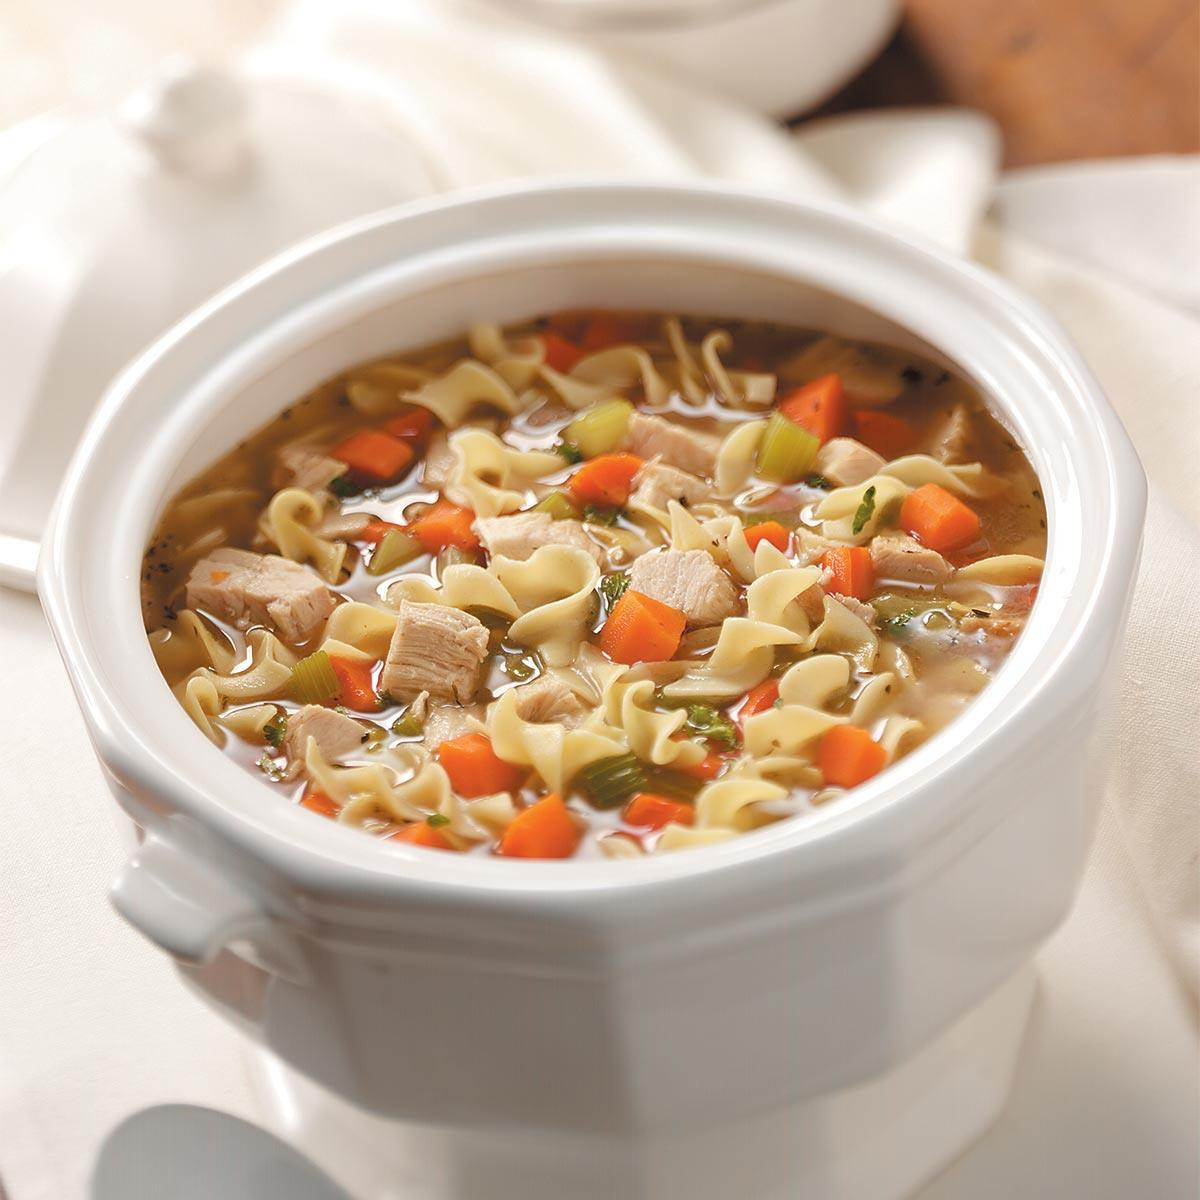 Turkey Noodle Soup  Old Fashioned Turkey Noodle Soup Recipe